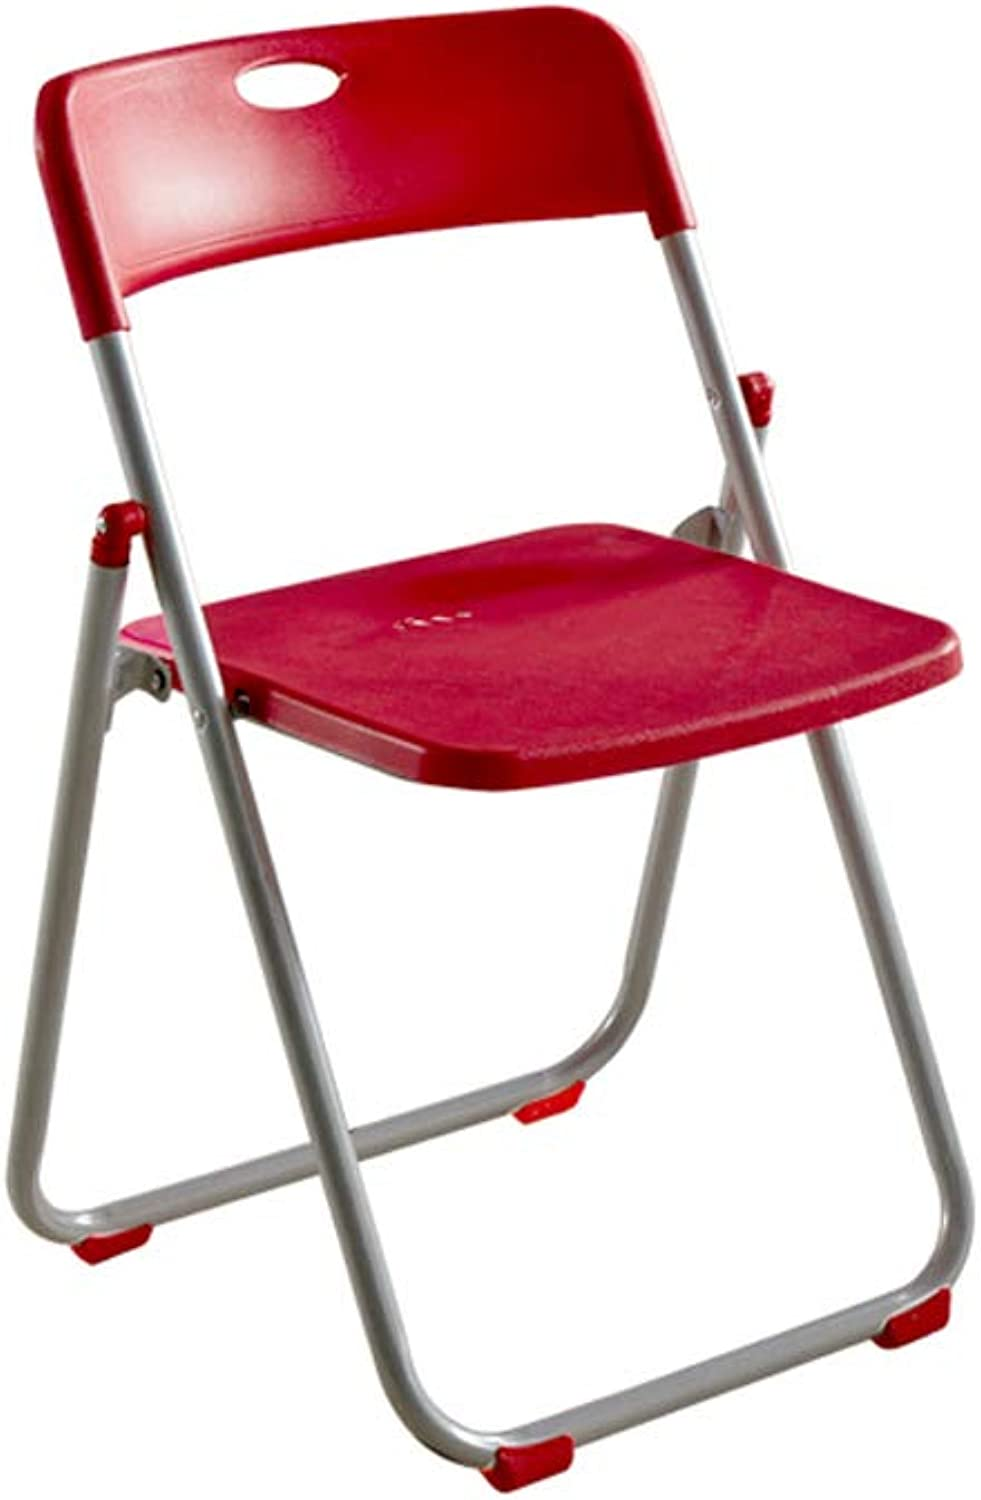 CQ Conference Folding Chair Portable Home Simple Dining Chair Chair Computer Staff Office Training Chair Leisure Seat Stool (color   Red)